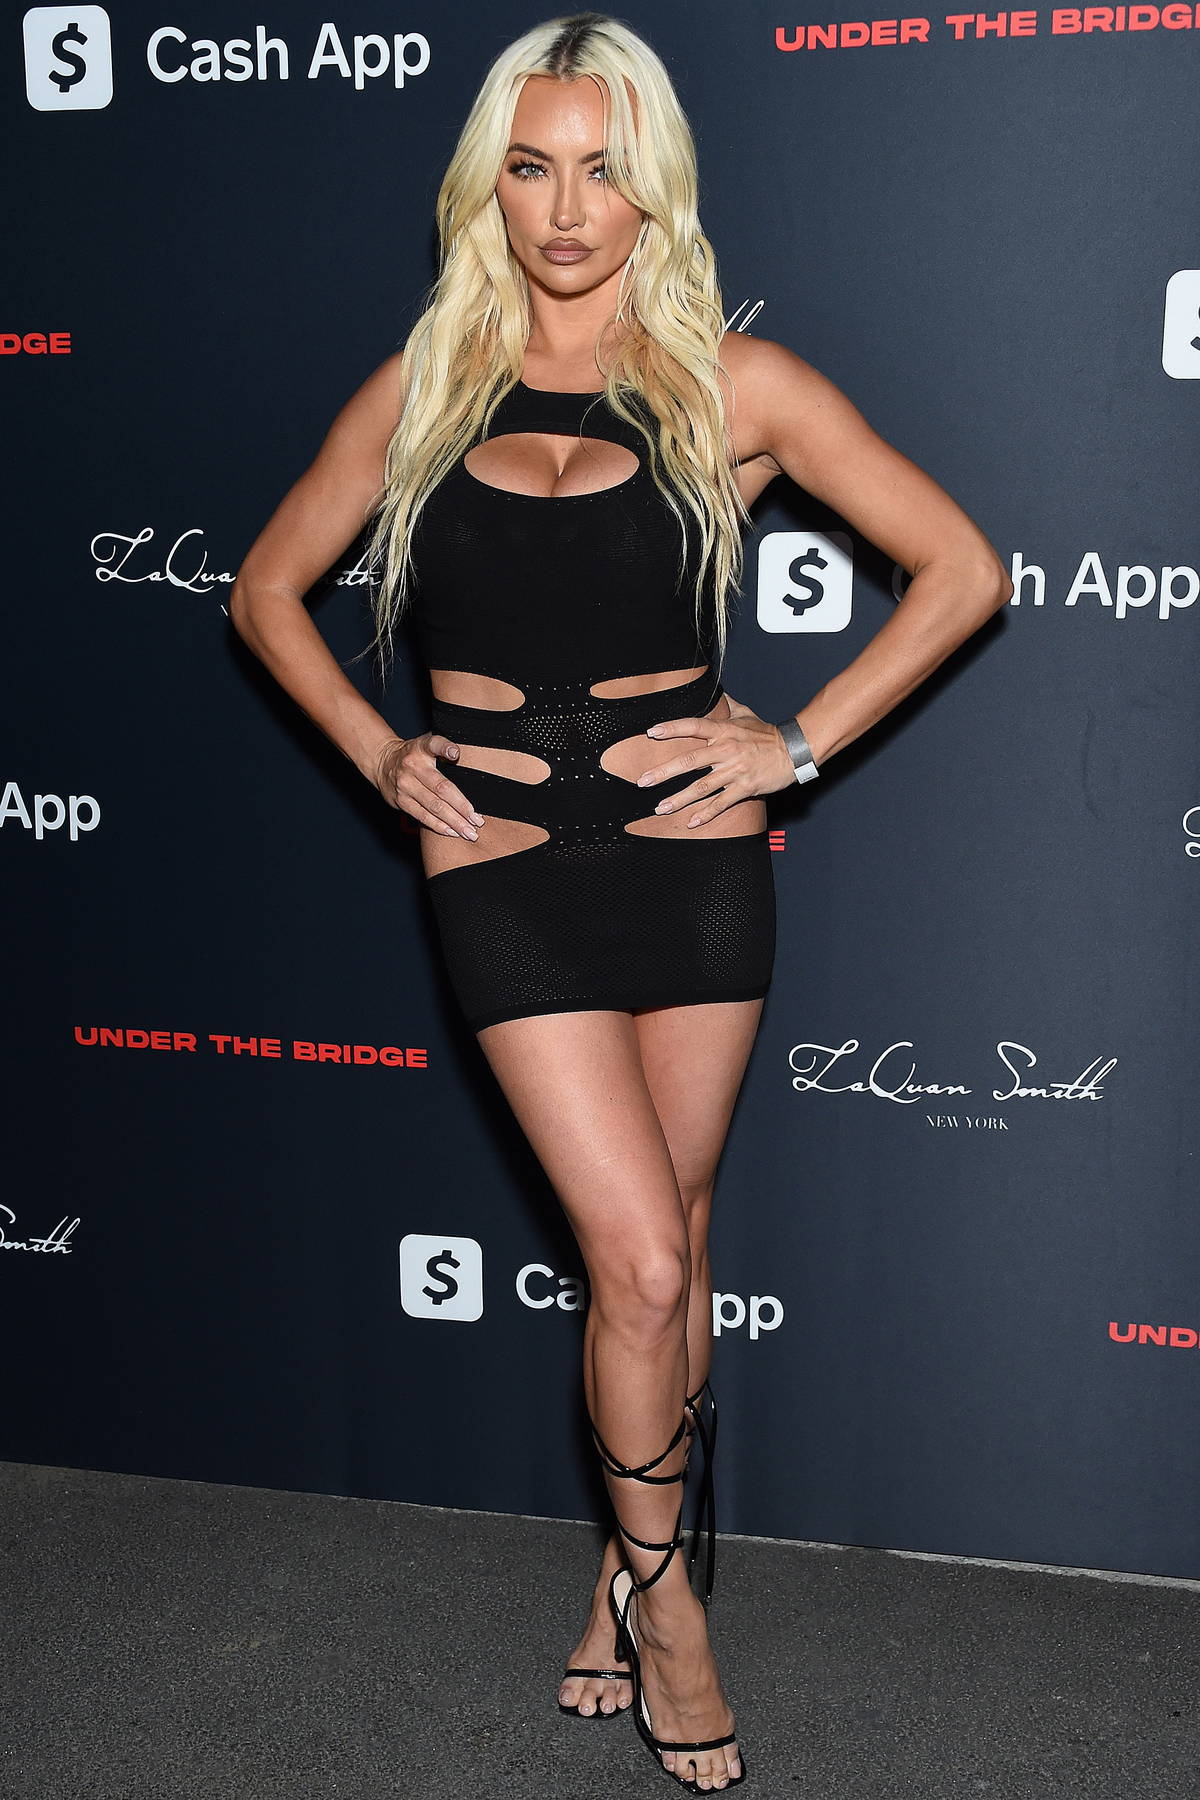 Lindsey Pelas attends LaQuan Smith's Met Gala after-party at Under The Bridge in New York City